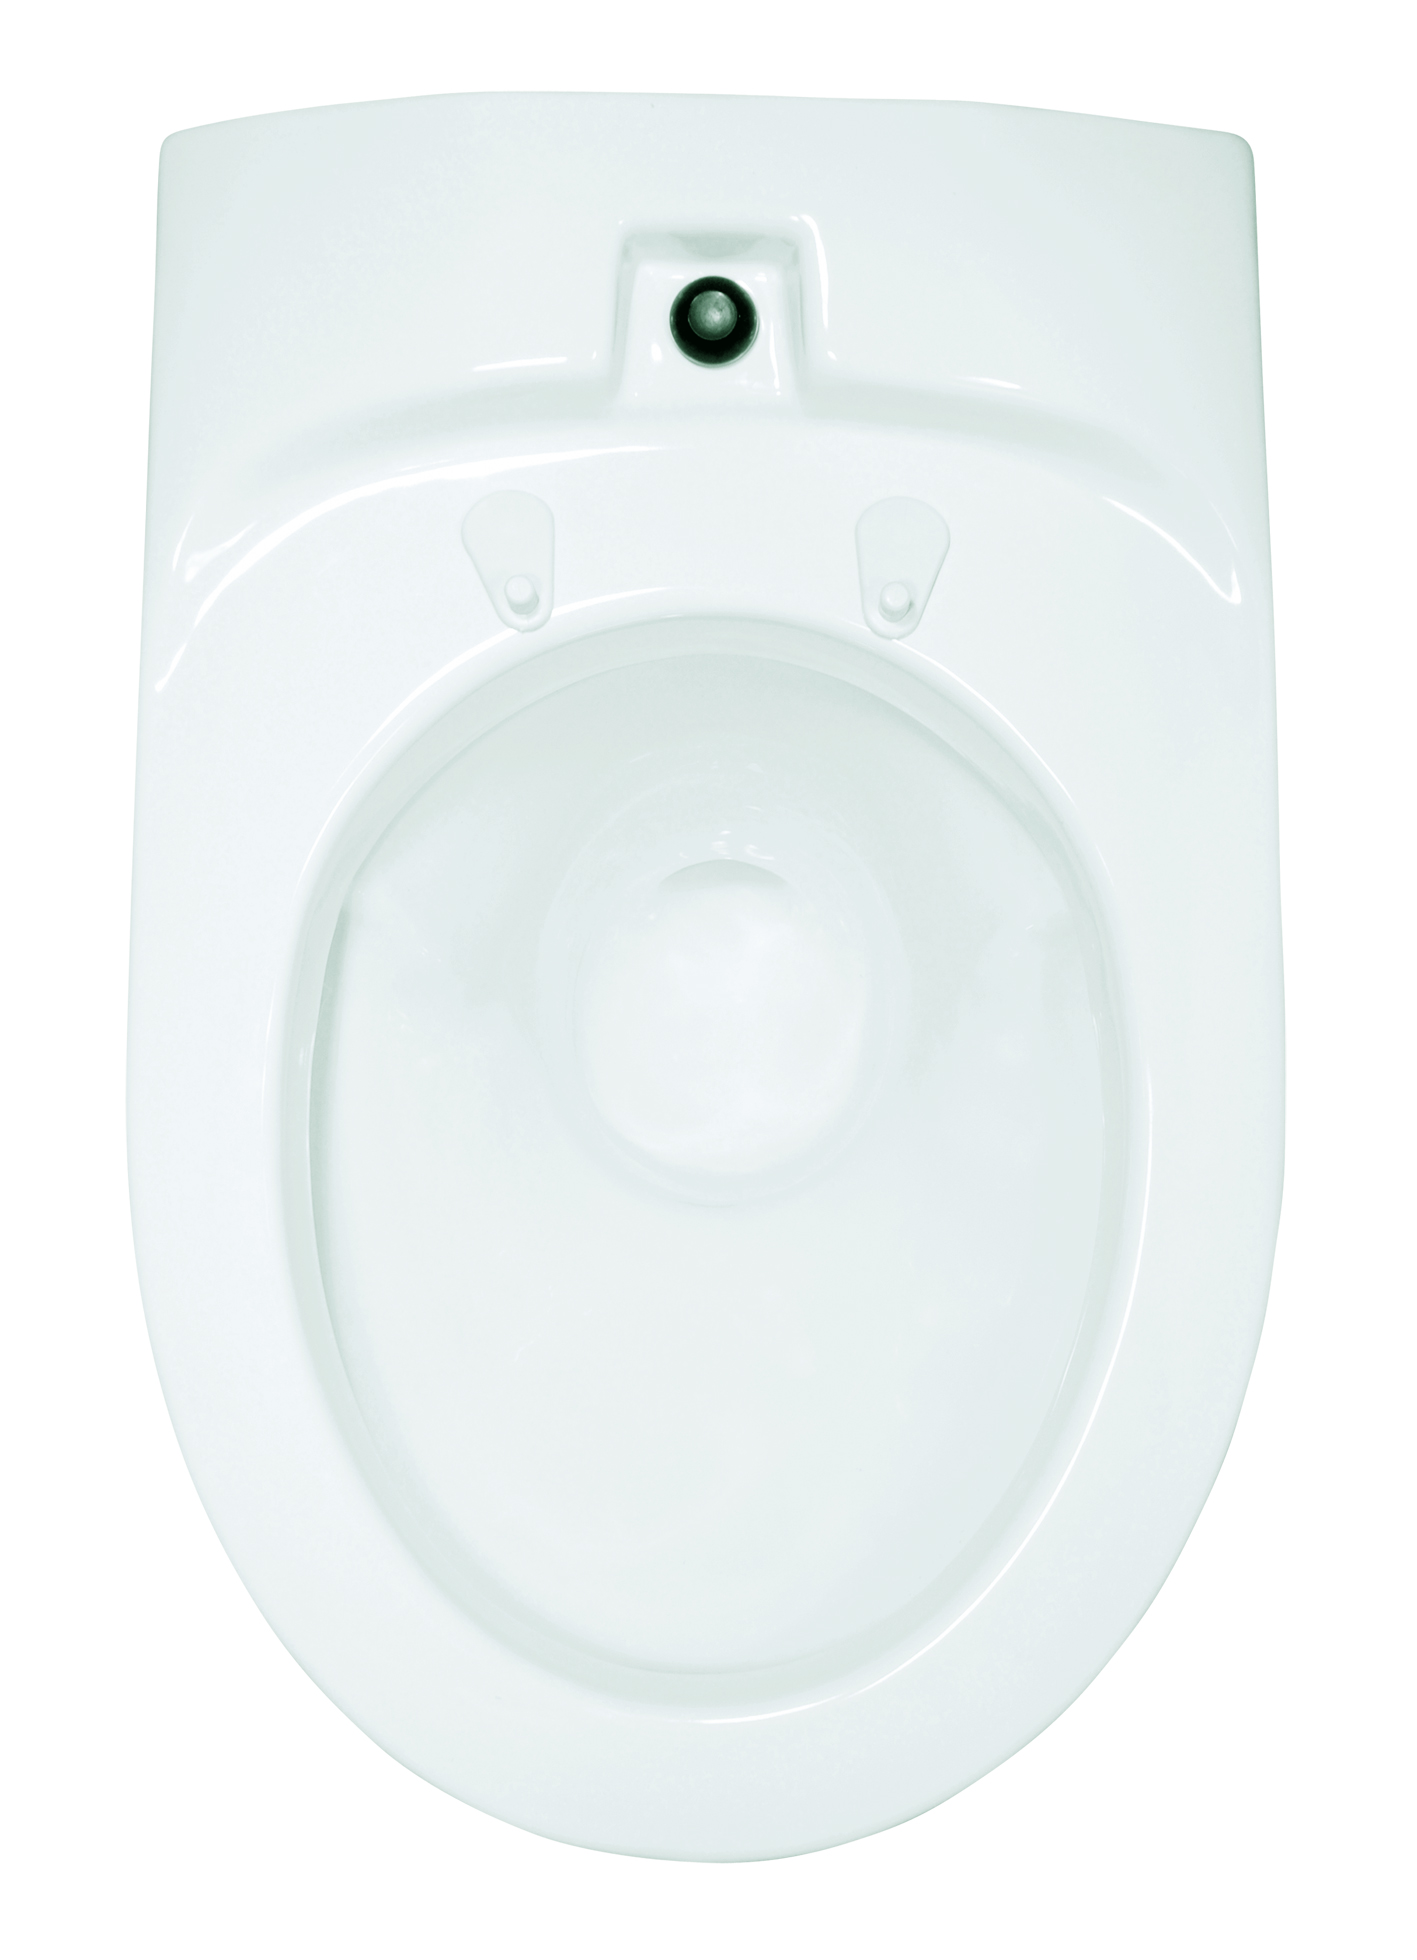 EcoVac - Extremely low-flush toilet with about 0,6 liter per flush! - EcoVac is a fantastic toilet with cutting-edge and unique technology that makes it possible to flush as little as between 0.2-0.6 liters per flush (0,1-0,2 gal). An extremely efficient toilet that makes it possible to get a real toilet experience wherever your home is.